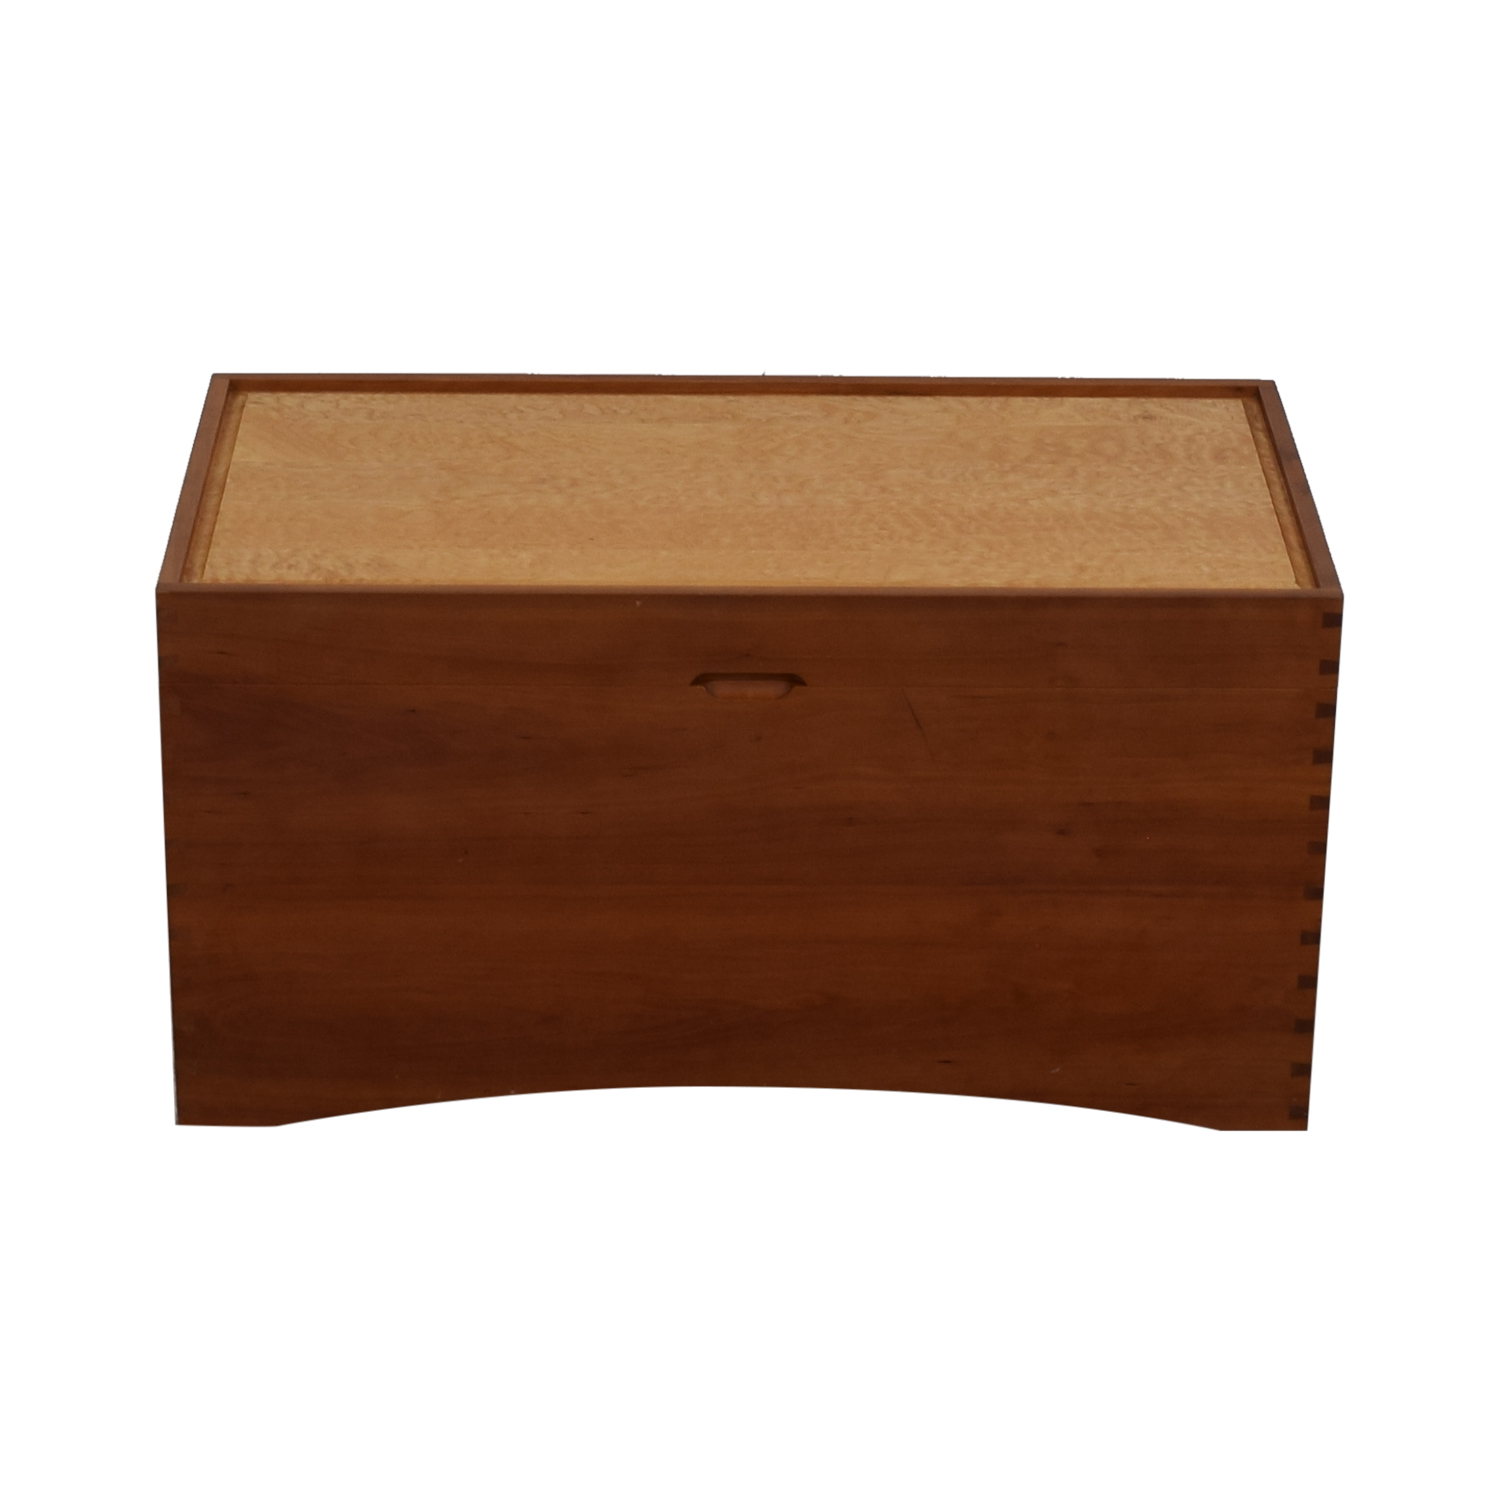 The Joinery The Joinery Custom Wood Hope Chest Trunk Trunks